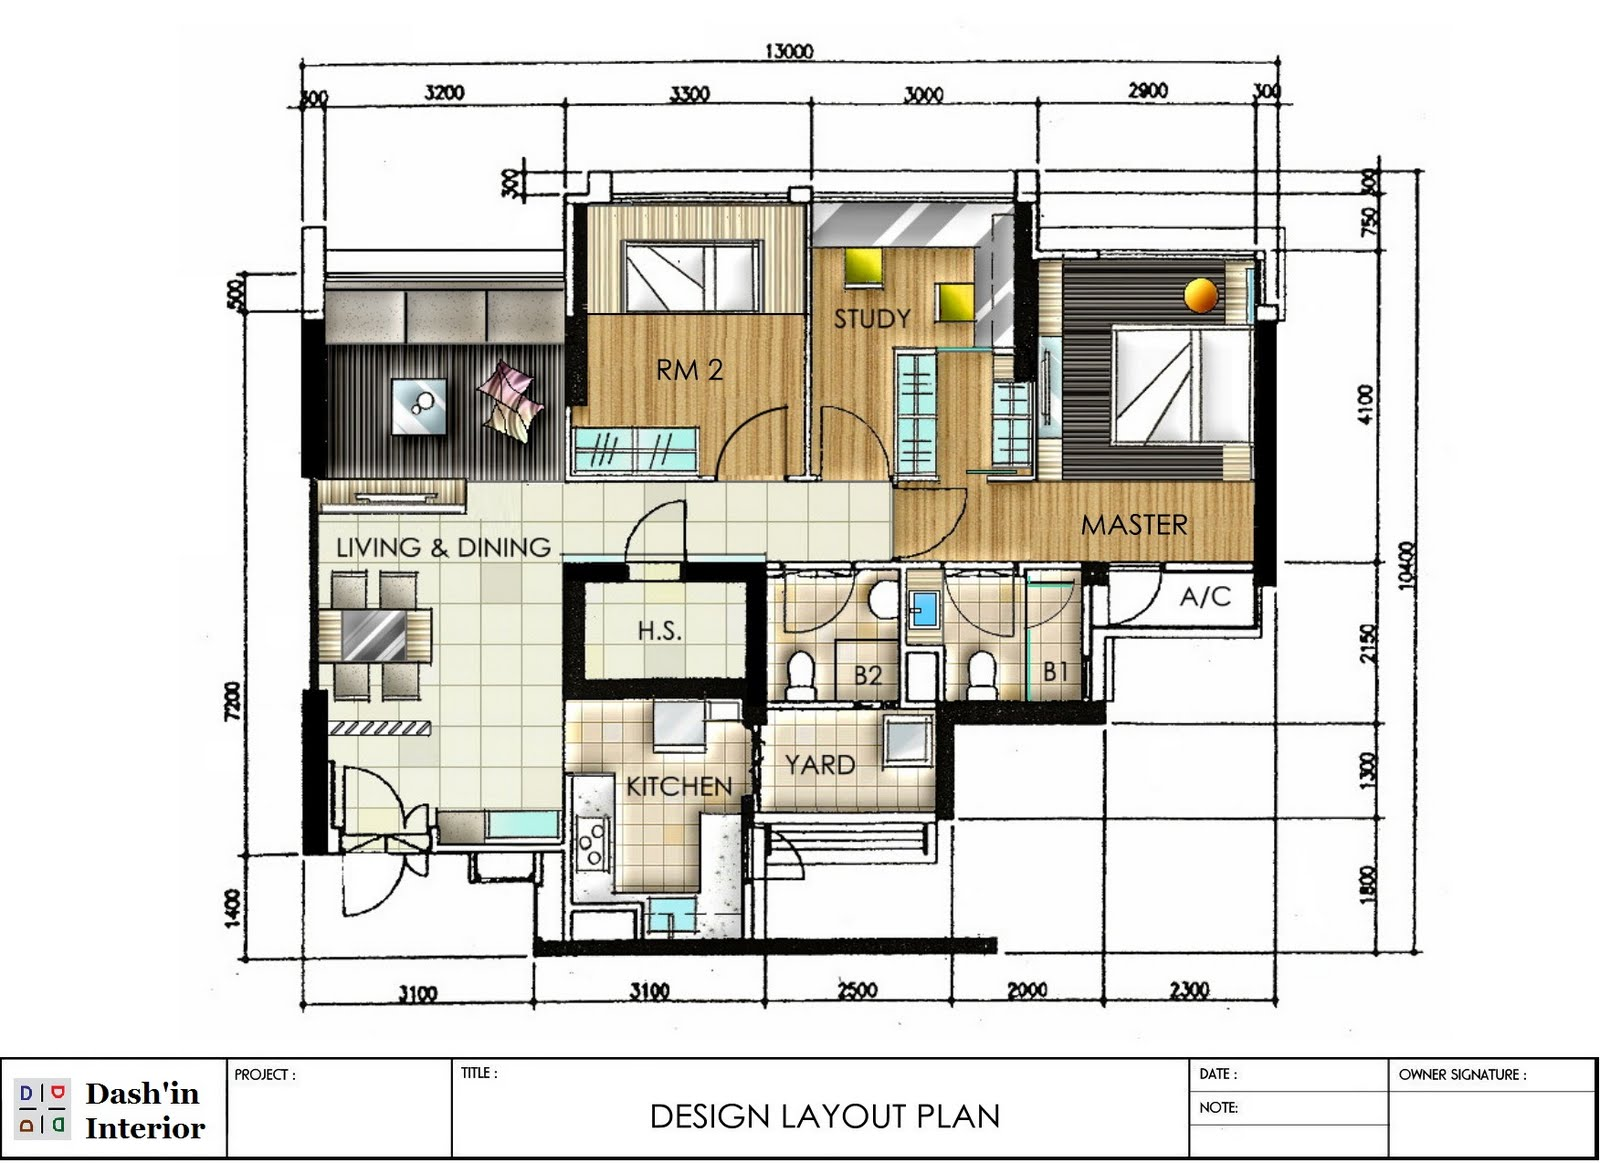 Stunning floor plan layout design 24 photos house plans for House interior design layout